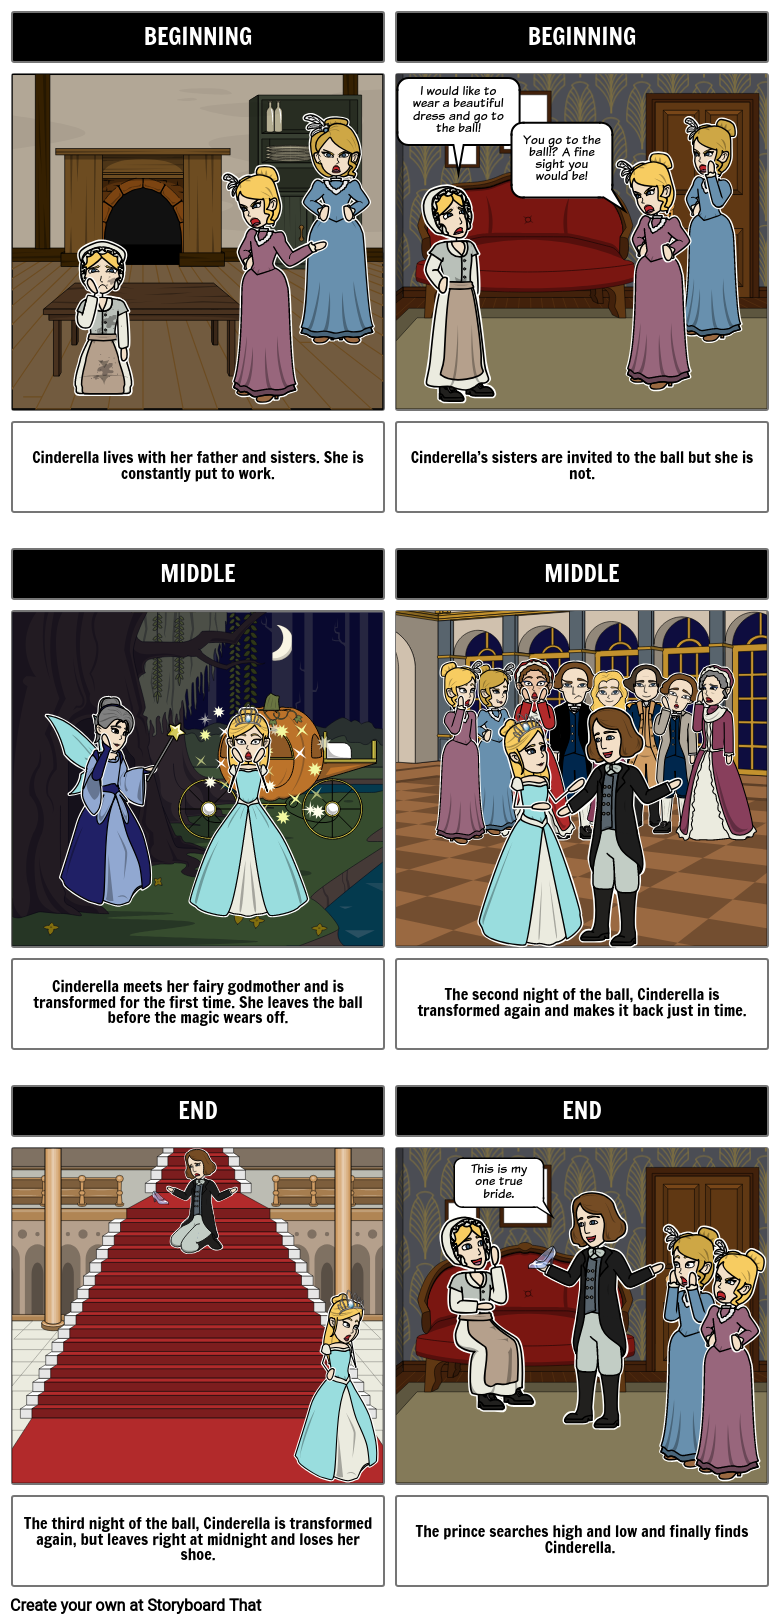 what is the moral lesson of cinderella